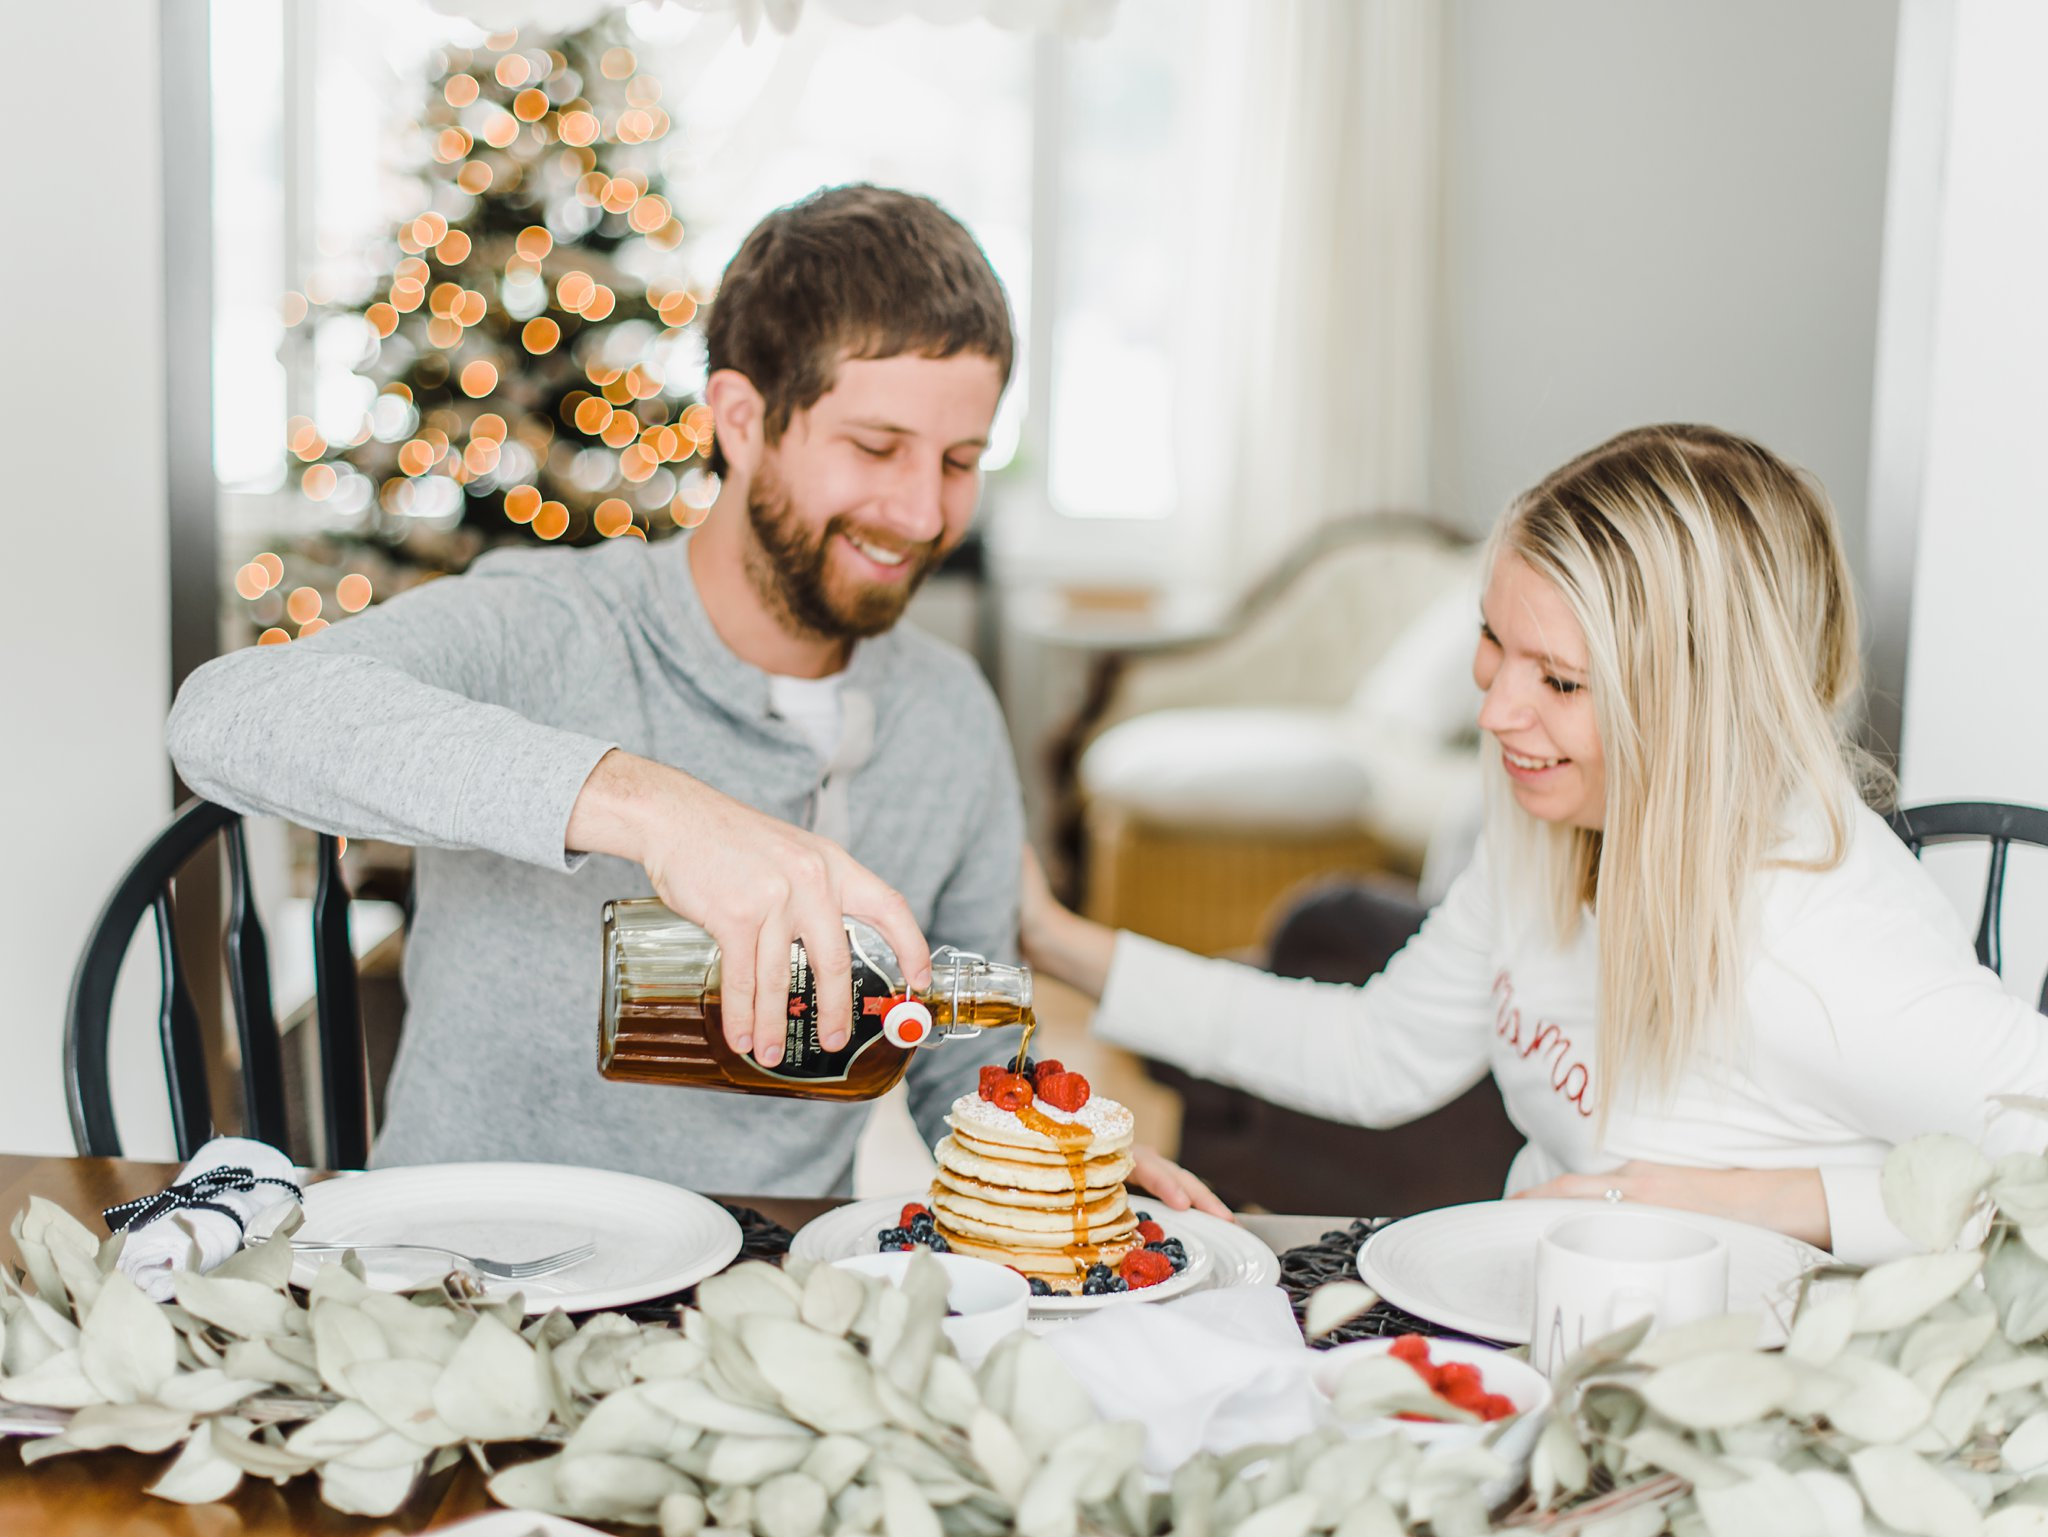 Pouring maple syrup on pancakes, Lifestyle Maternity Photos in Ottawa on 'Pancake Sunday'